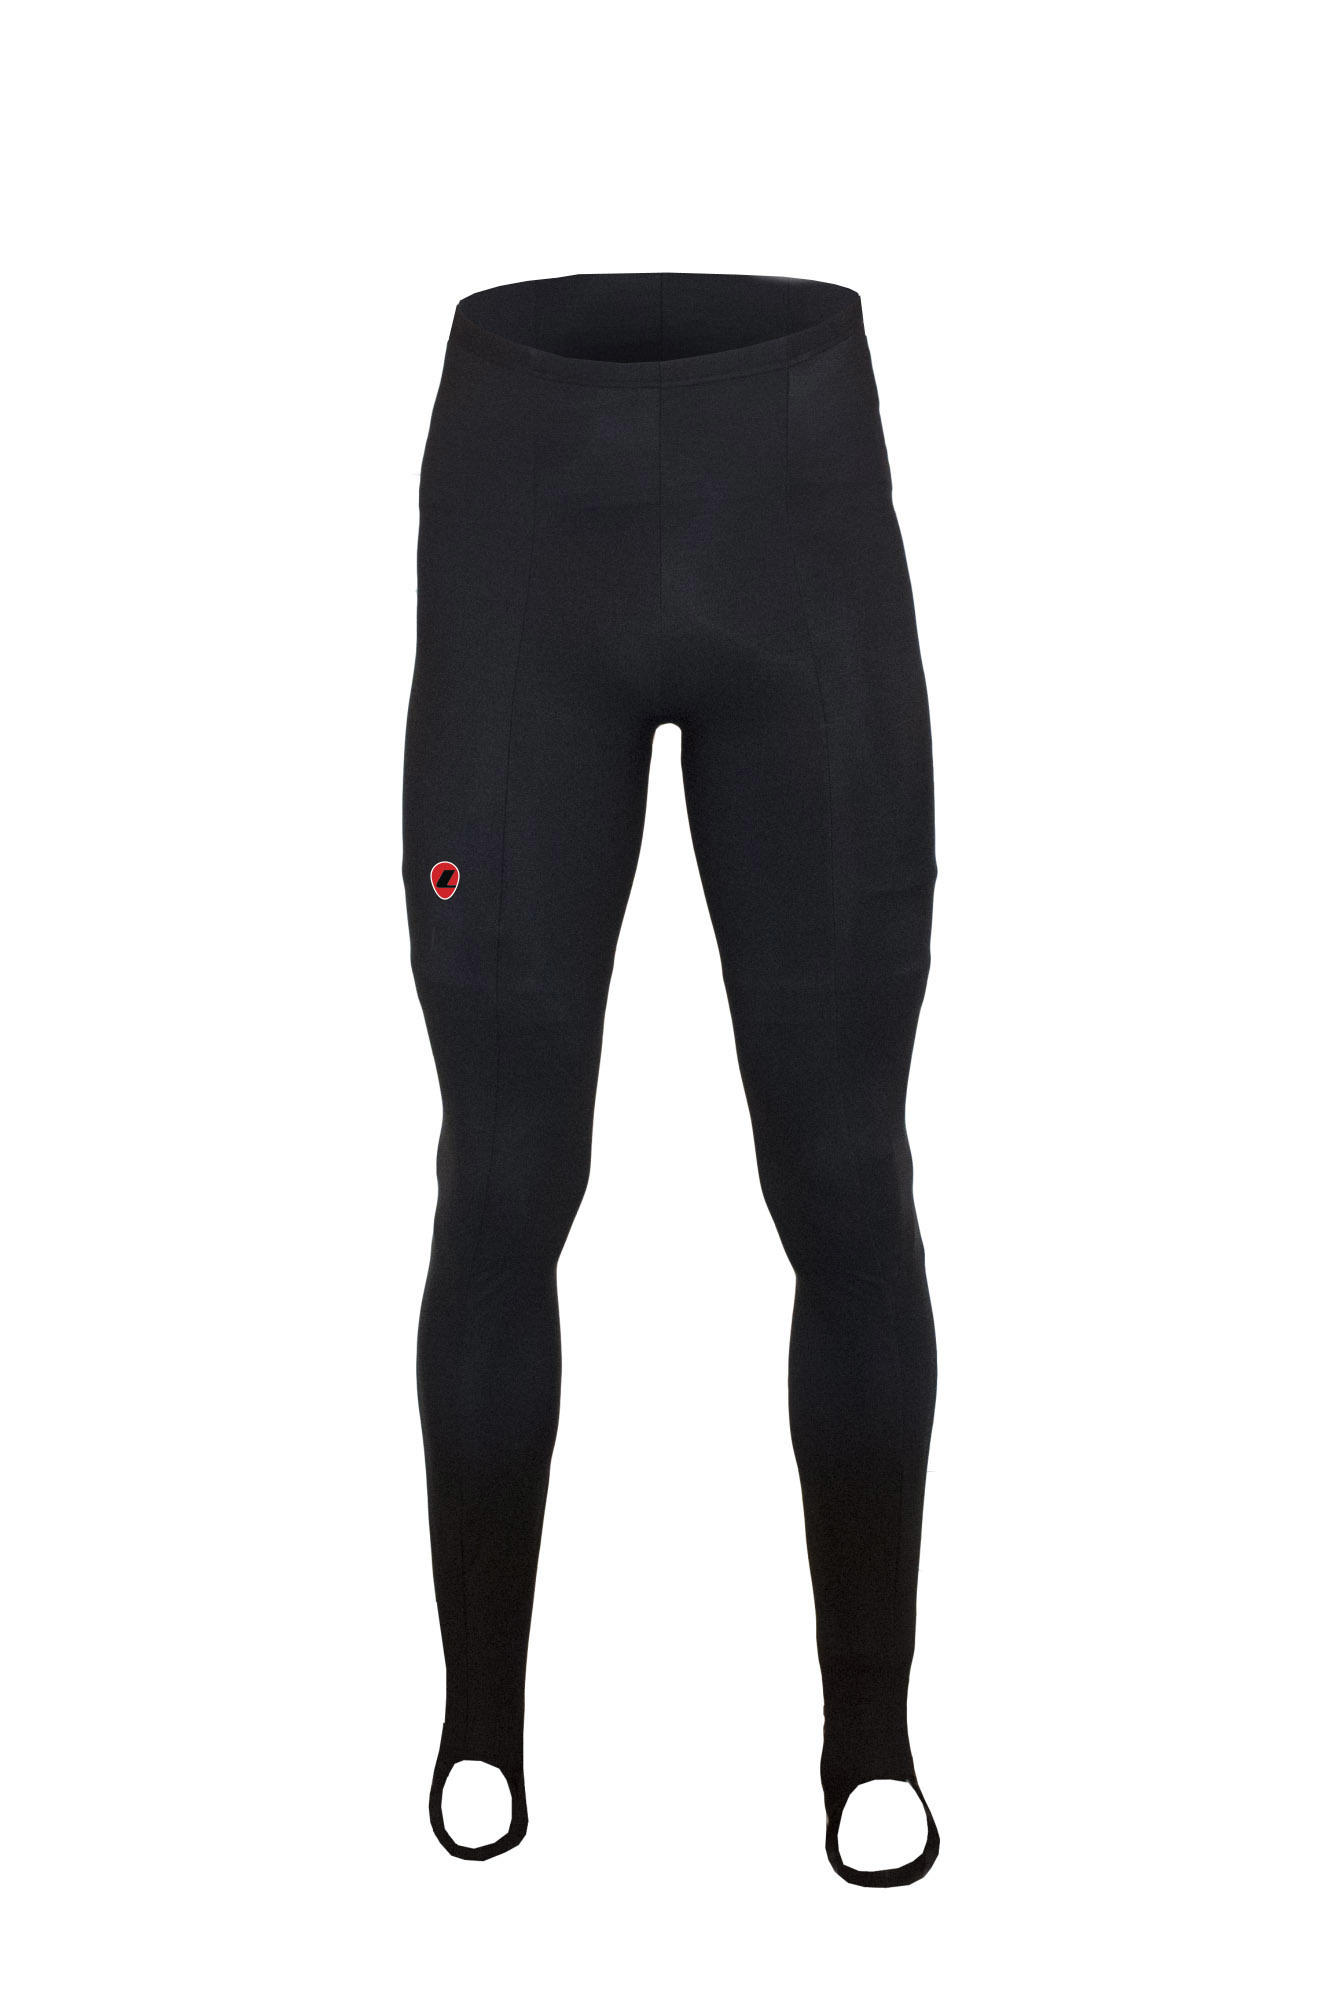 Lusso Lusso Roubaix Tights with Pad XL